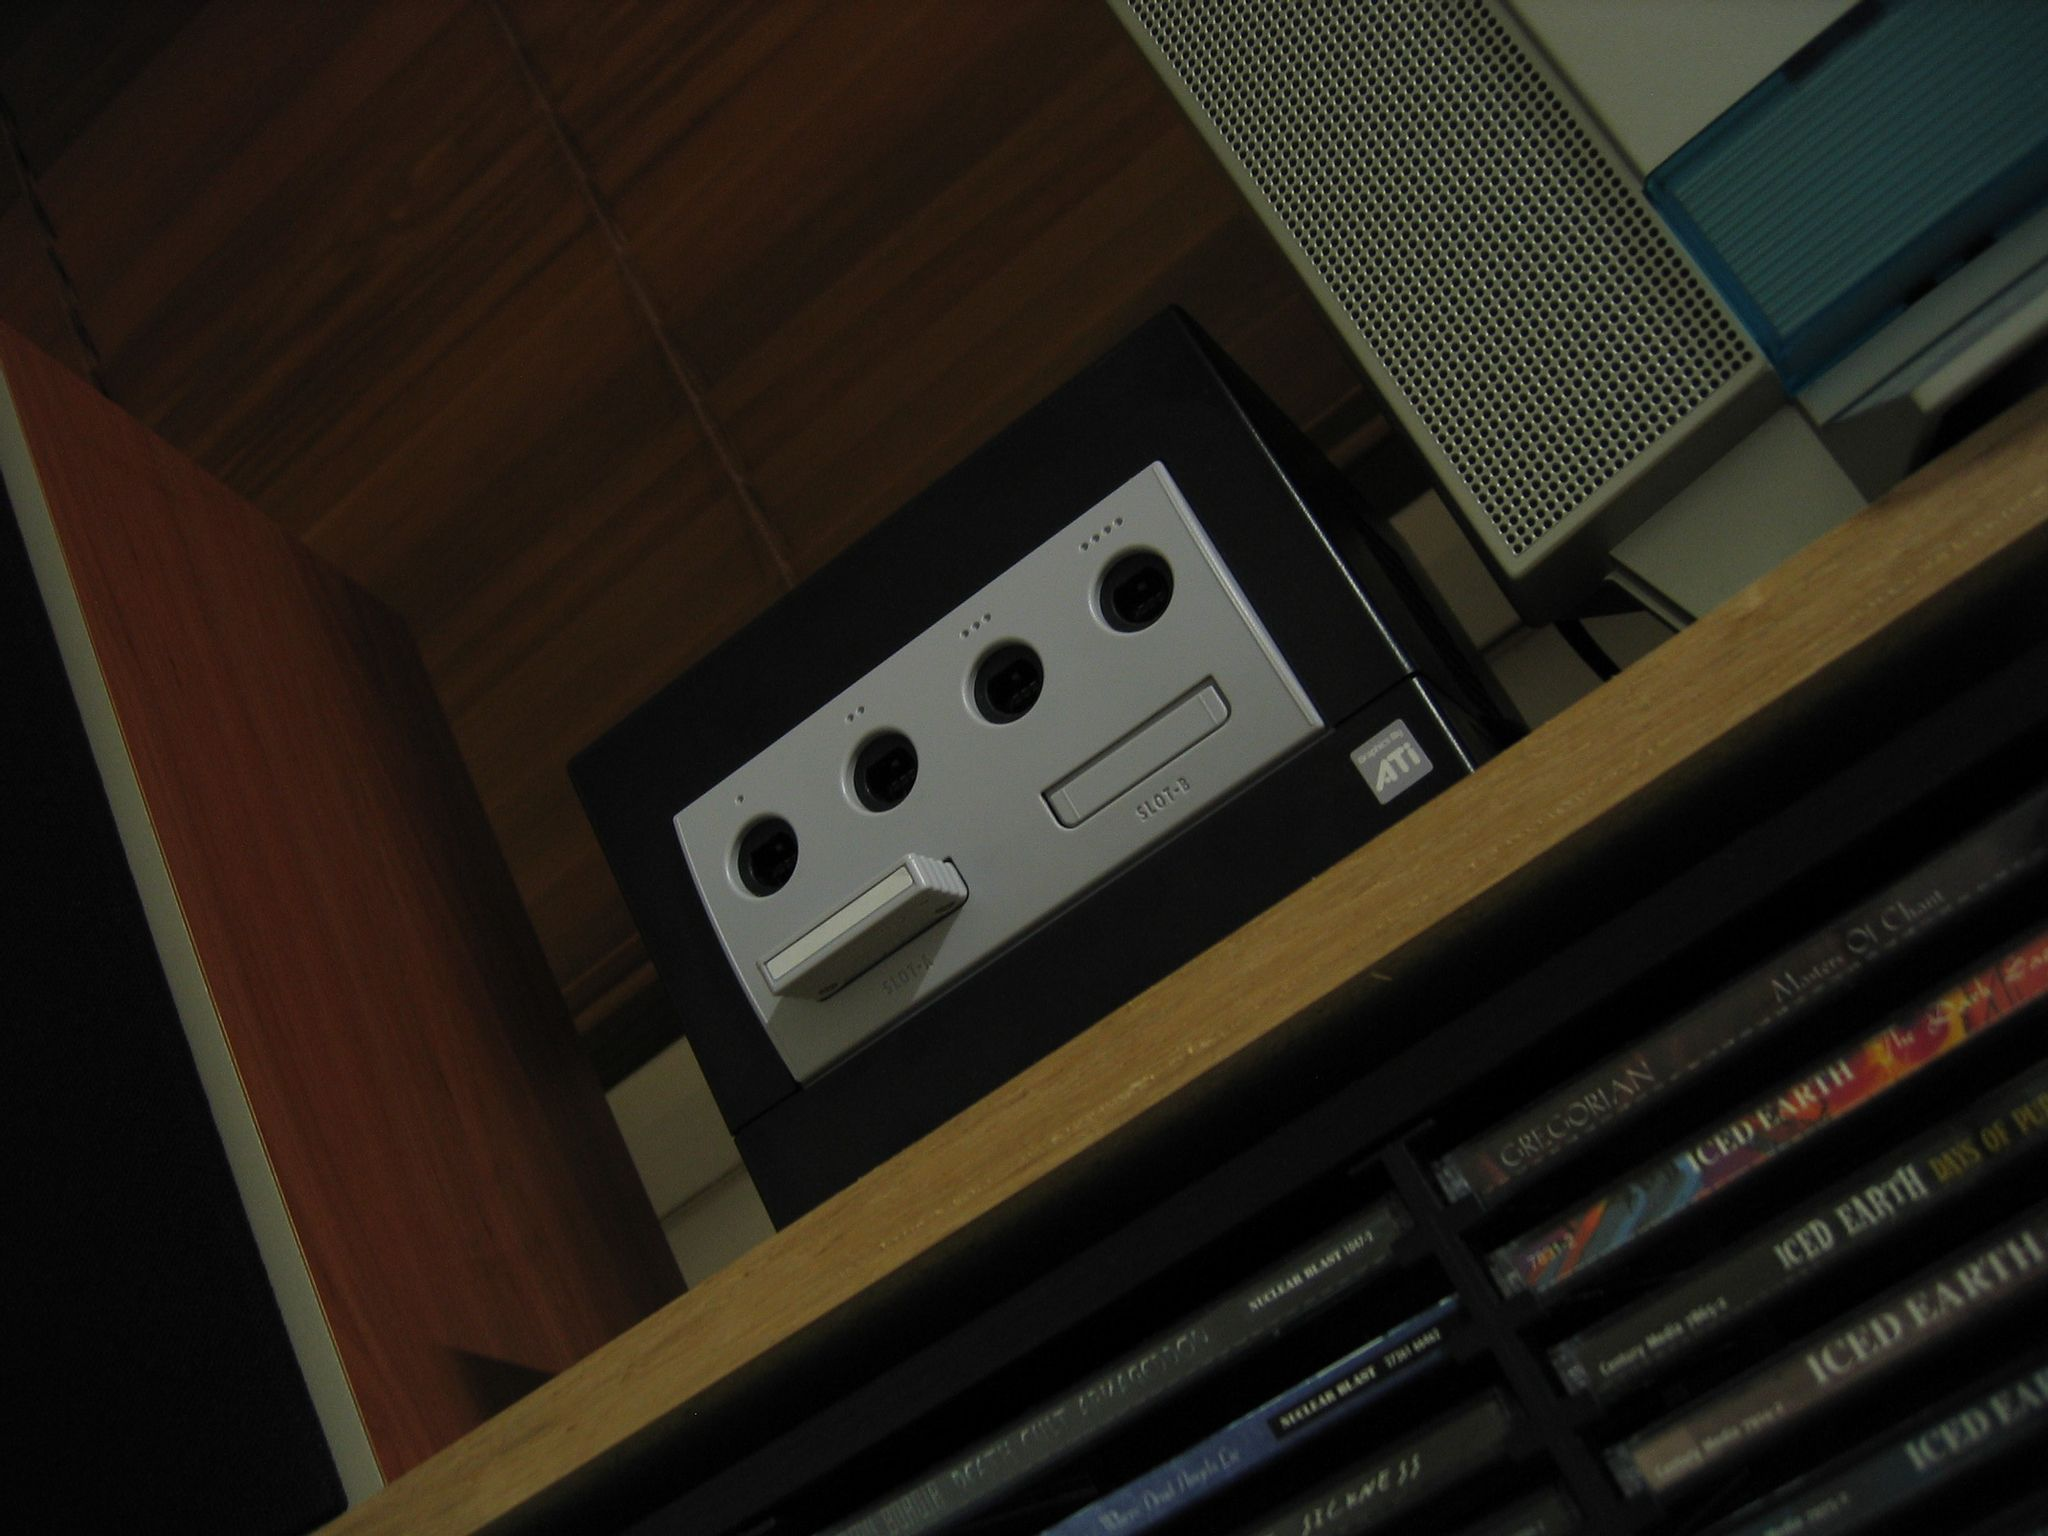 A photo of a Nintendo GameCube on a shelf, taken from below the shelf and looking up at an angle.